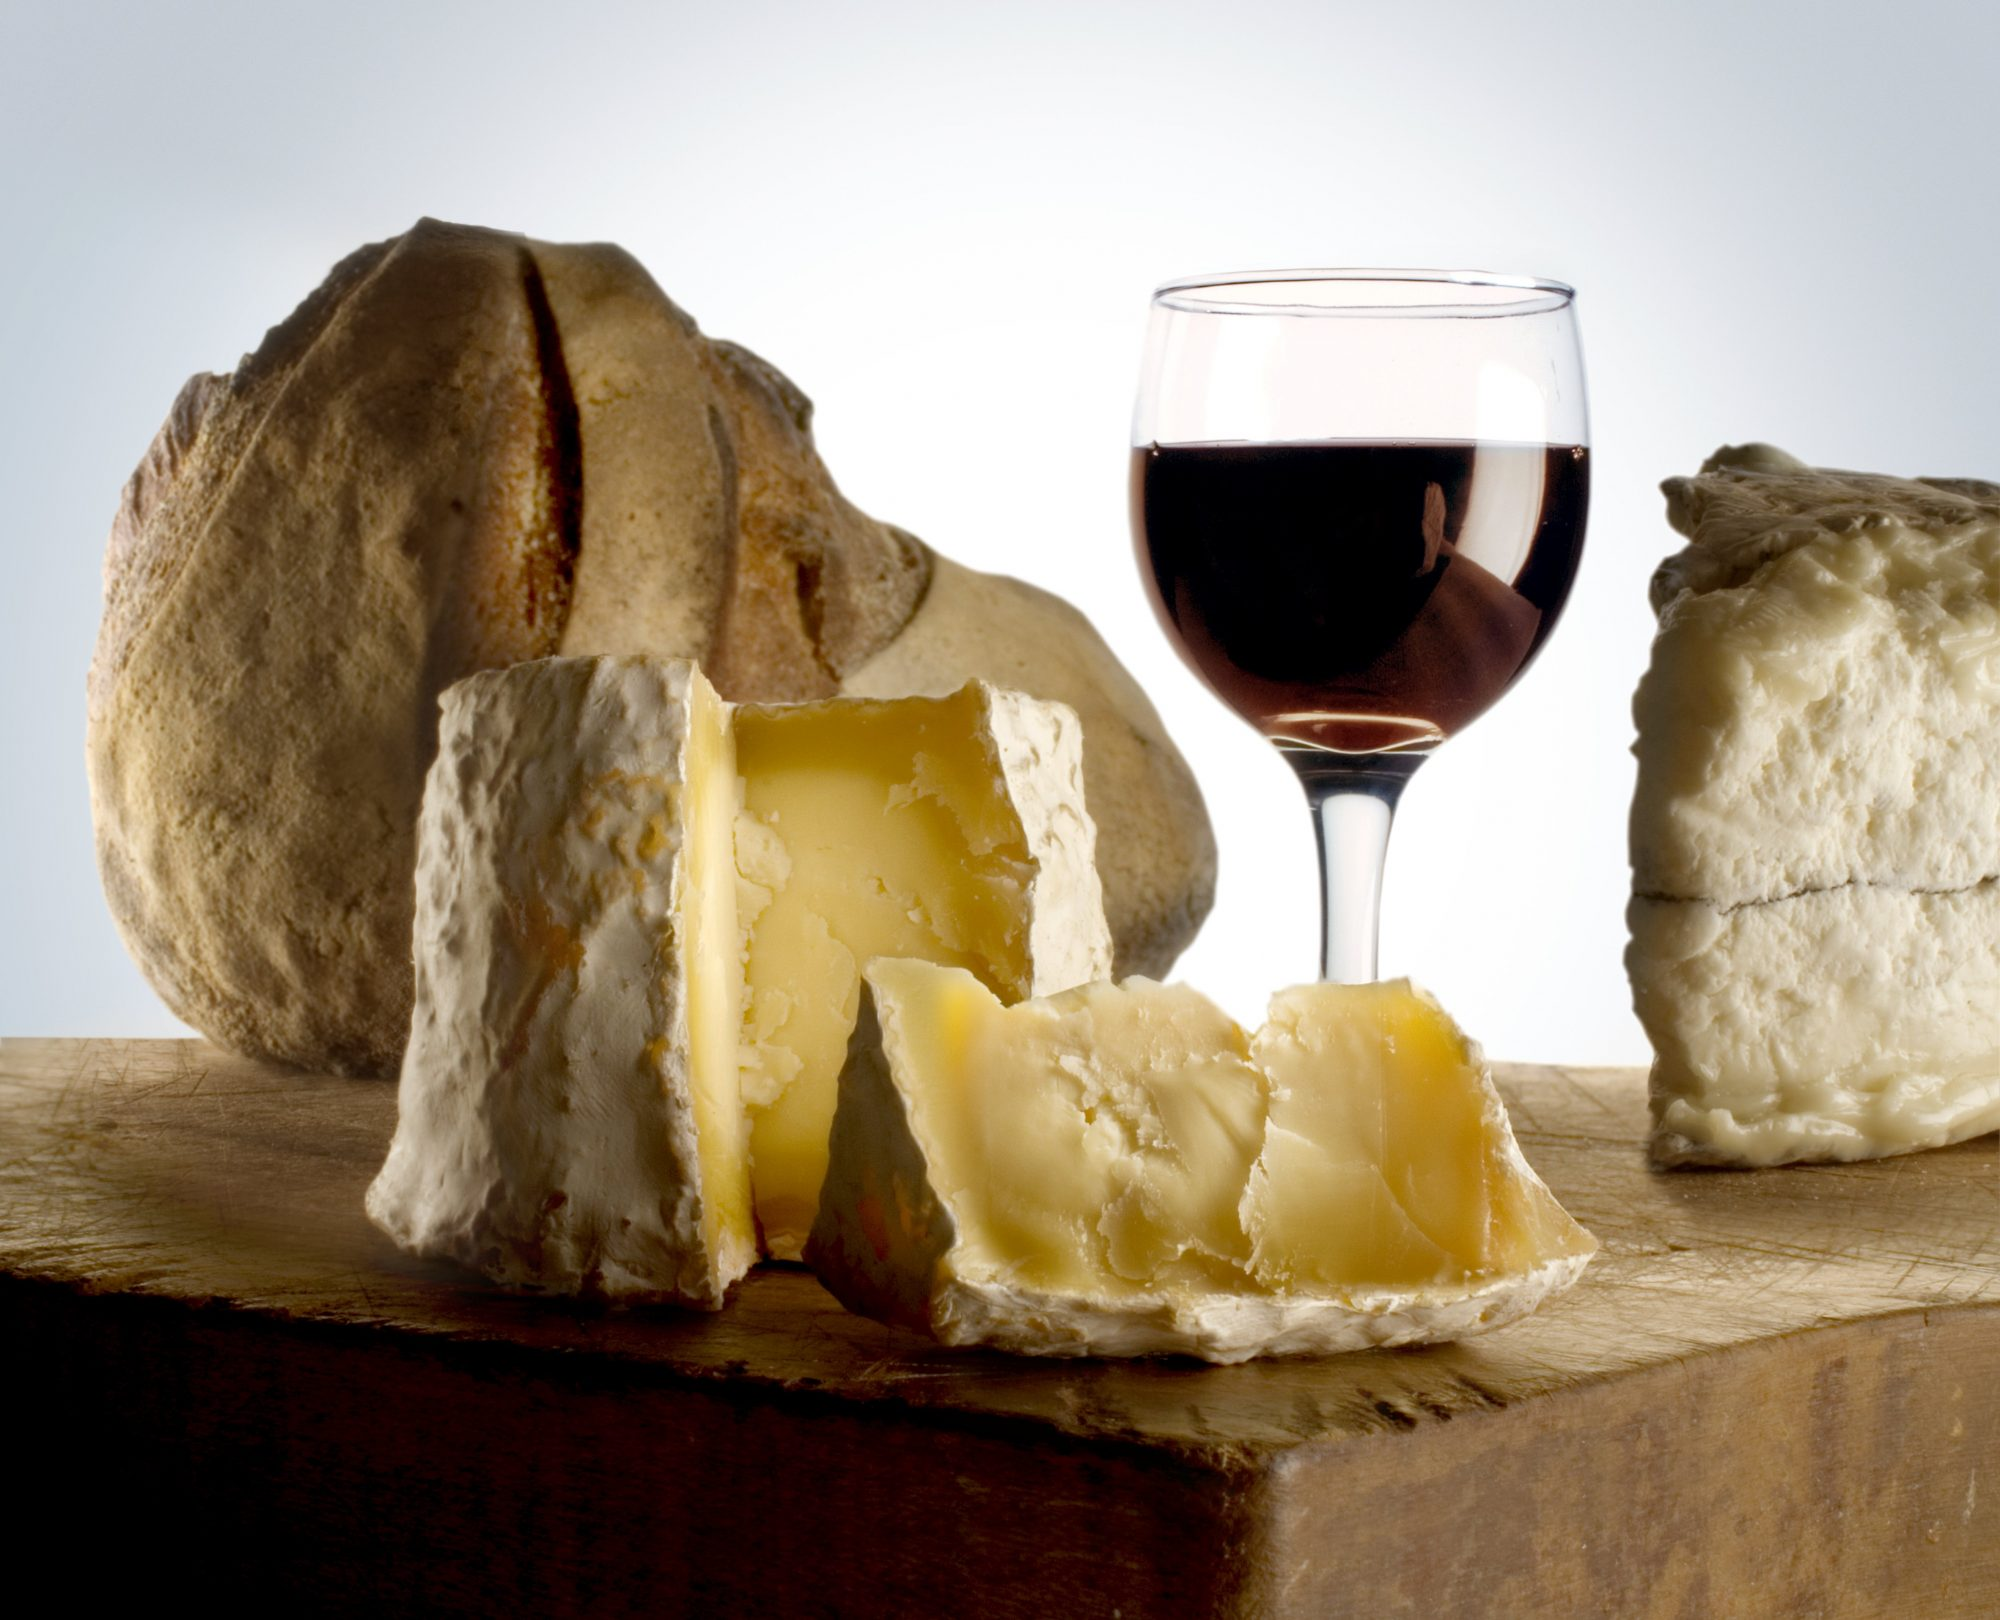 10 Arrested in Fancy Wine and Cheese Heist